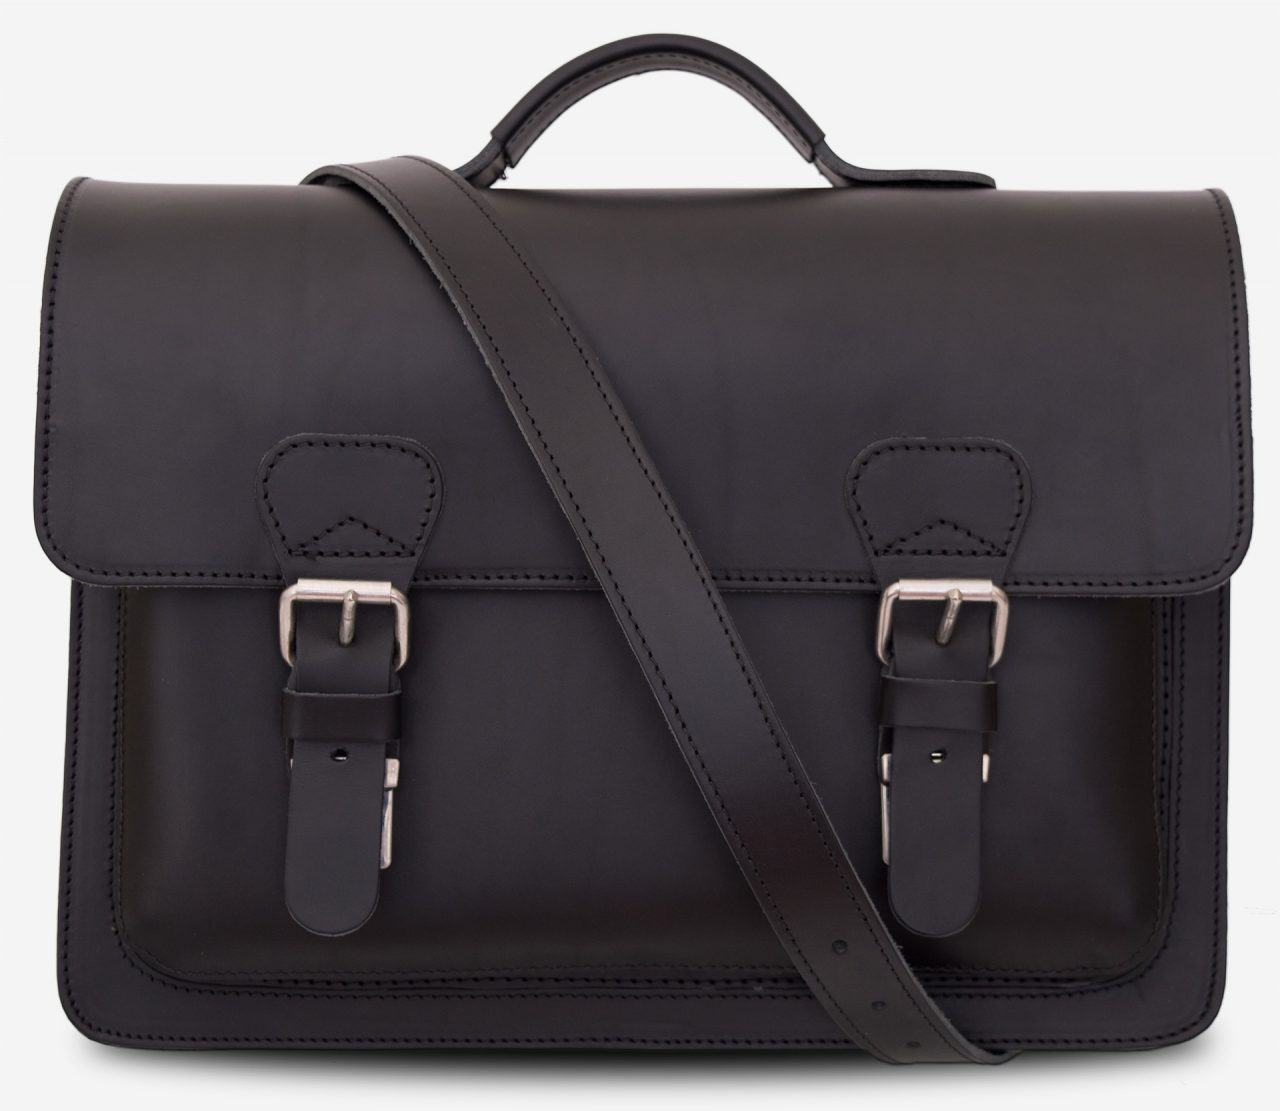 Front view of black leather briefcase with one compartment and a shoulder strap 112103.